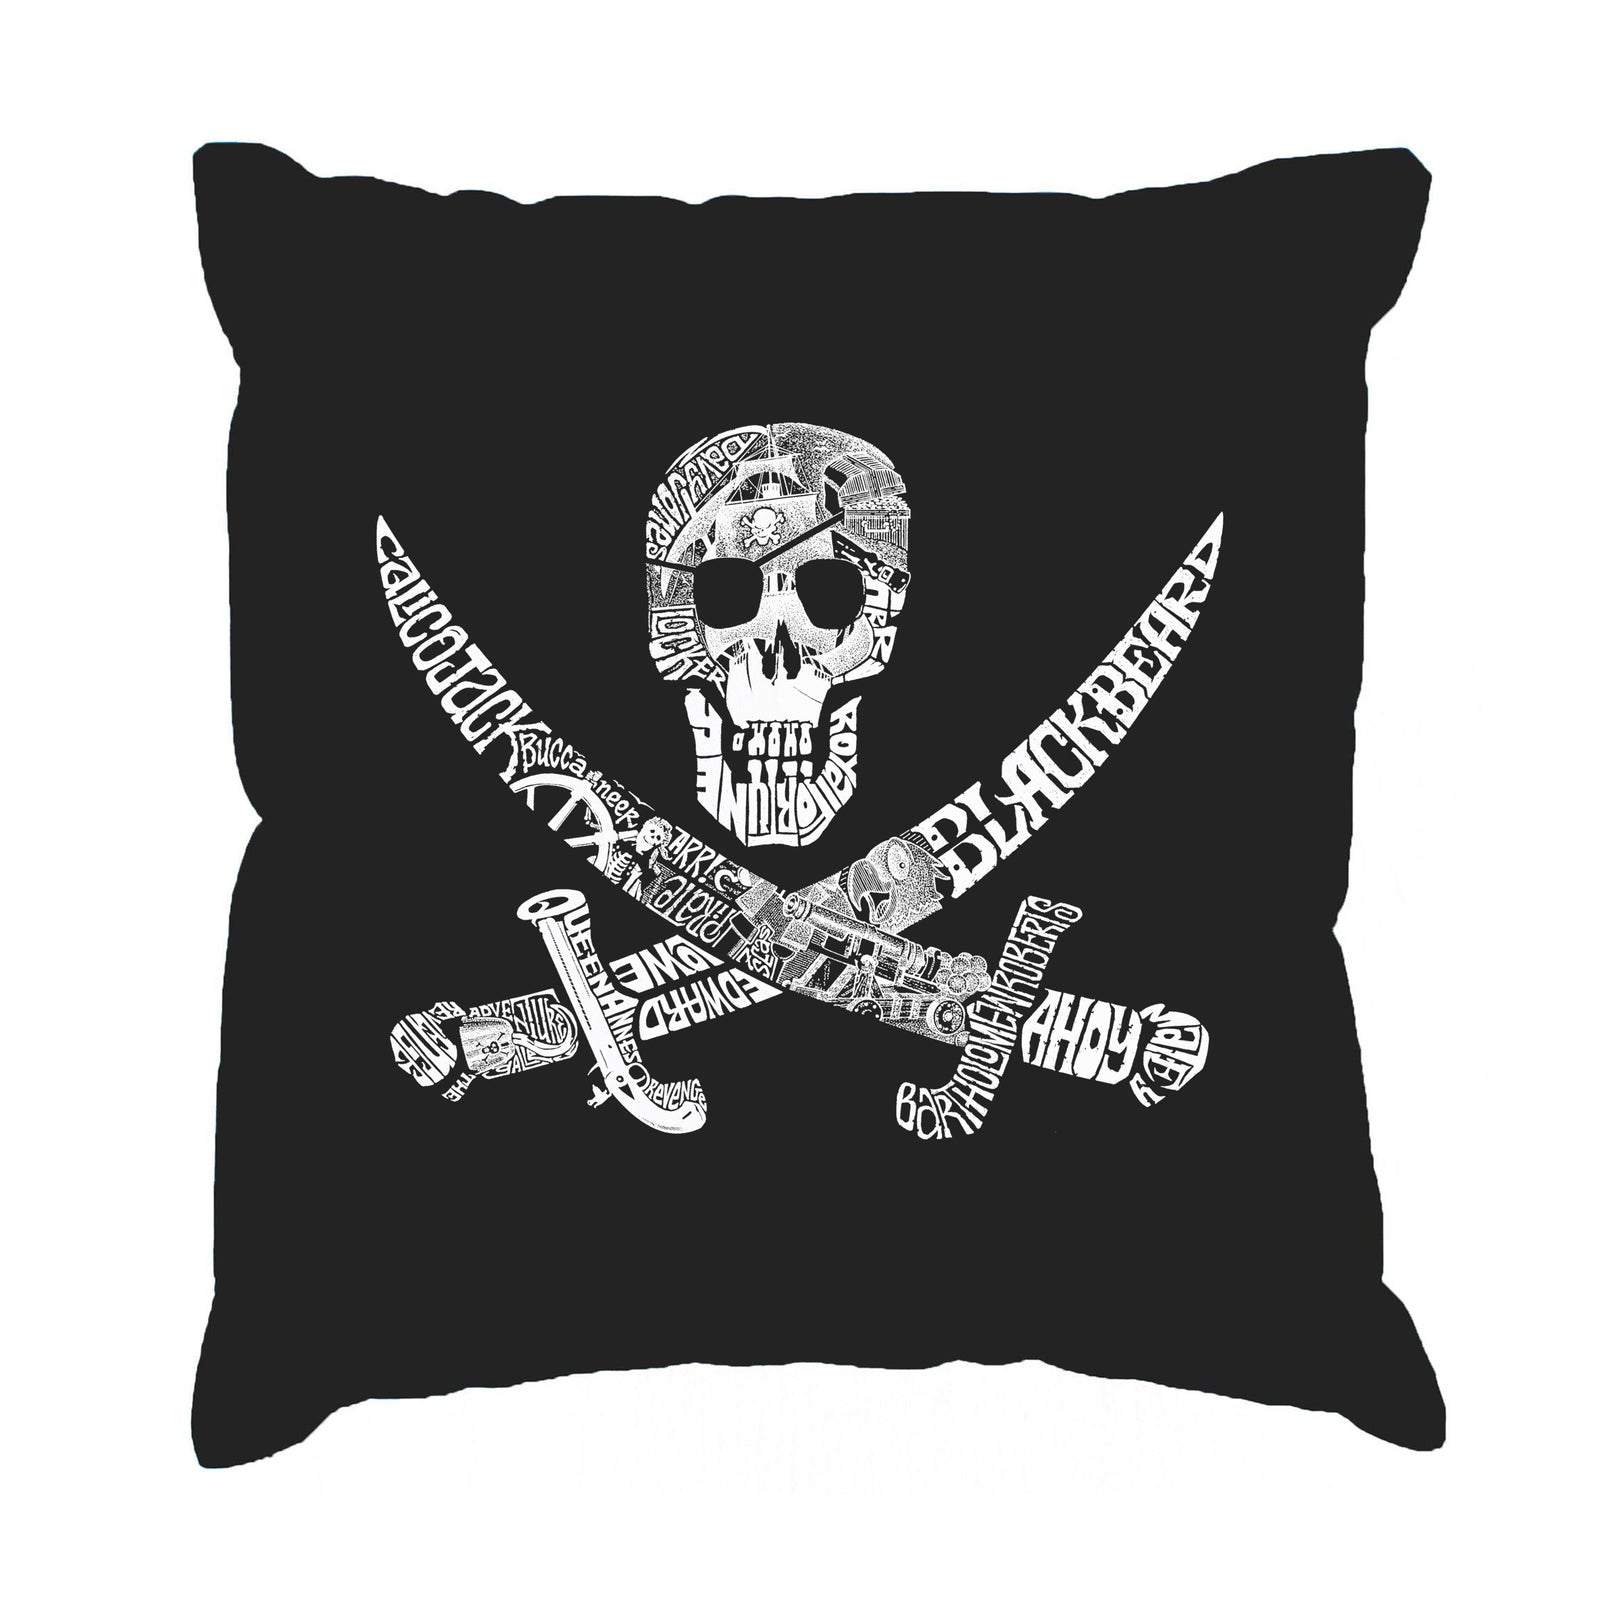 Throw Pillow Cover - PIRATE CAPTAINS, SHIPS AND IMAGERY